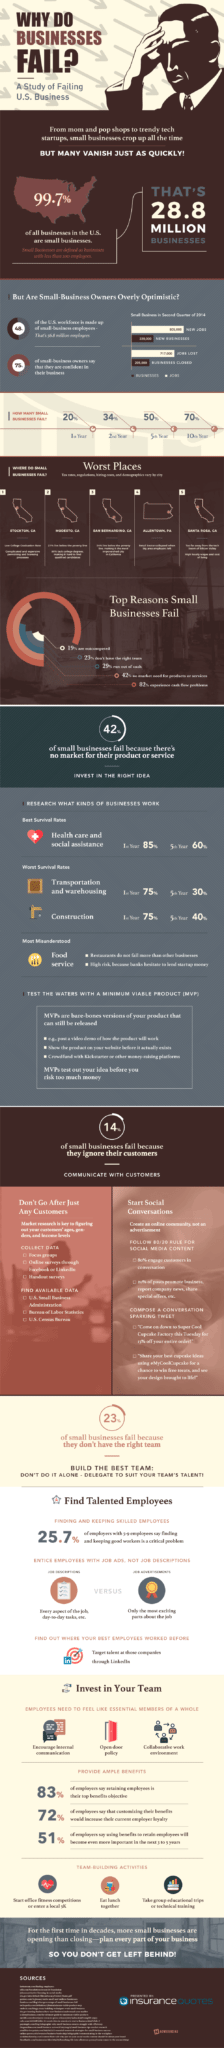 Why Do Businesses Fail And What Can You Do About It? [Infographic] 1